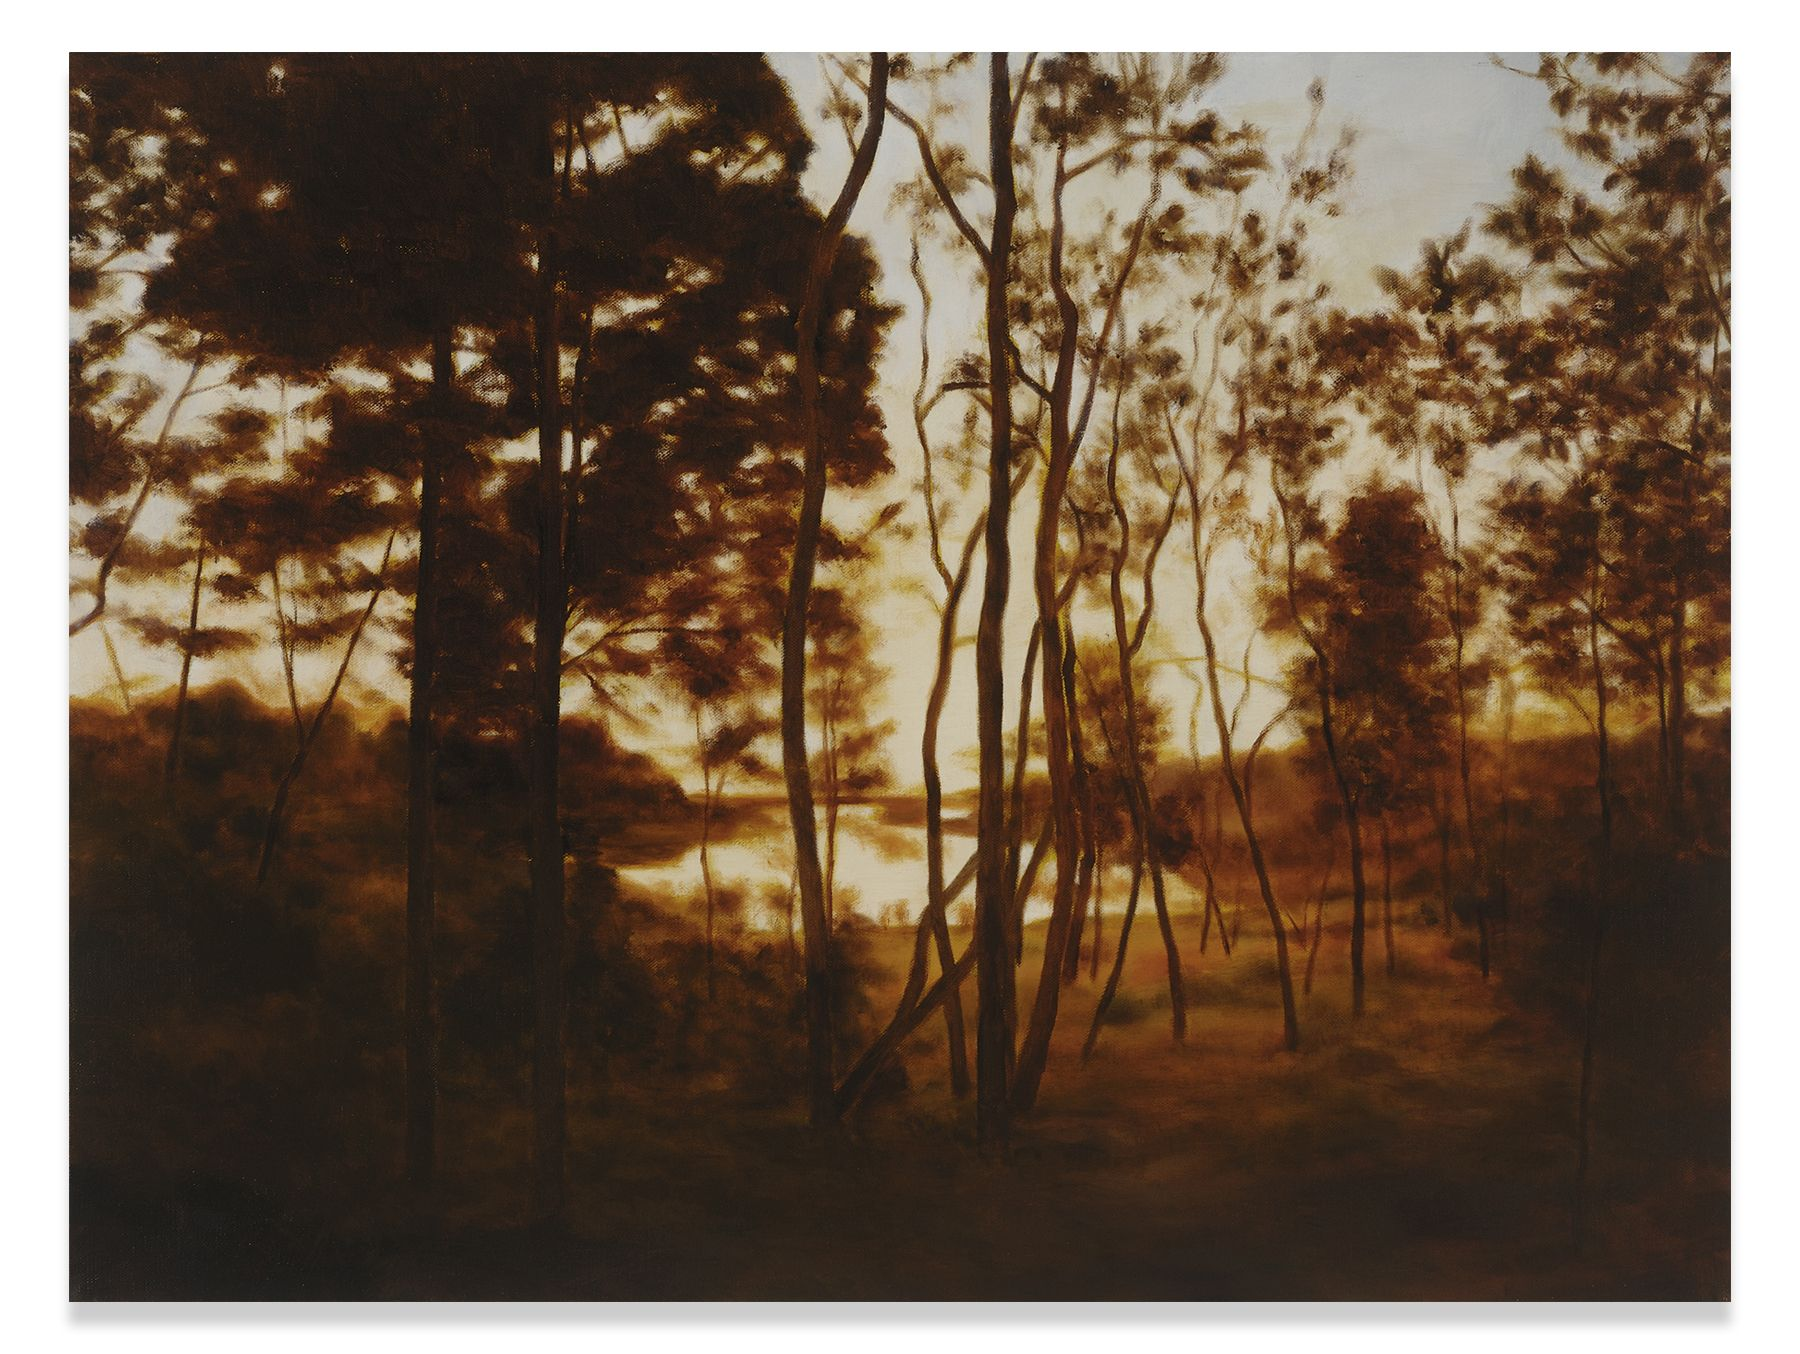 Fall Forest Light, 2015, Oil on linen,21 x 26 inches, 53.3 x 66 cm, MMG#30411